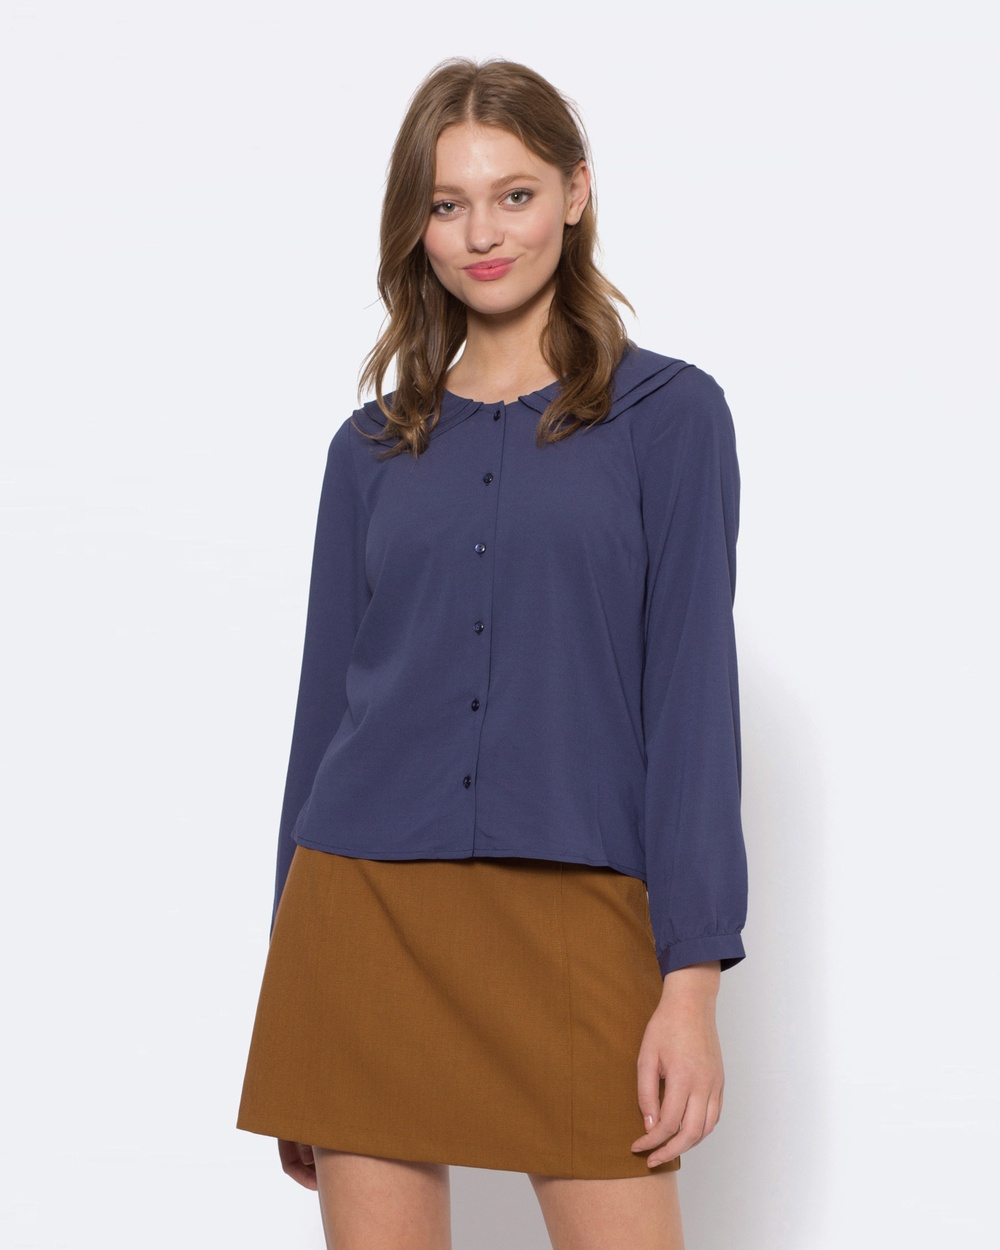 Princess Highway Maggie Blouse Tops BLUE Maggie Blouse